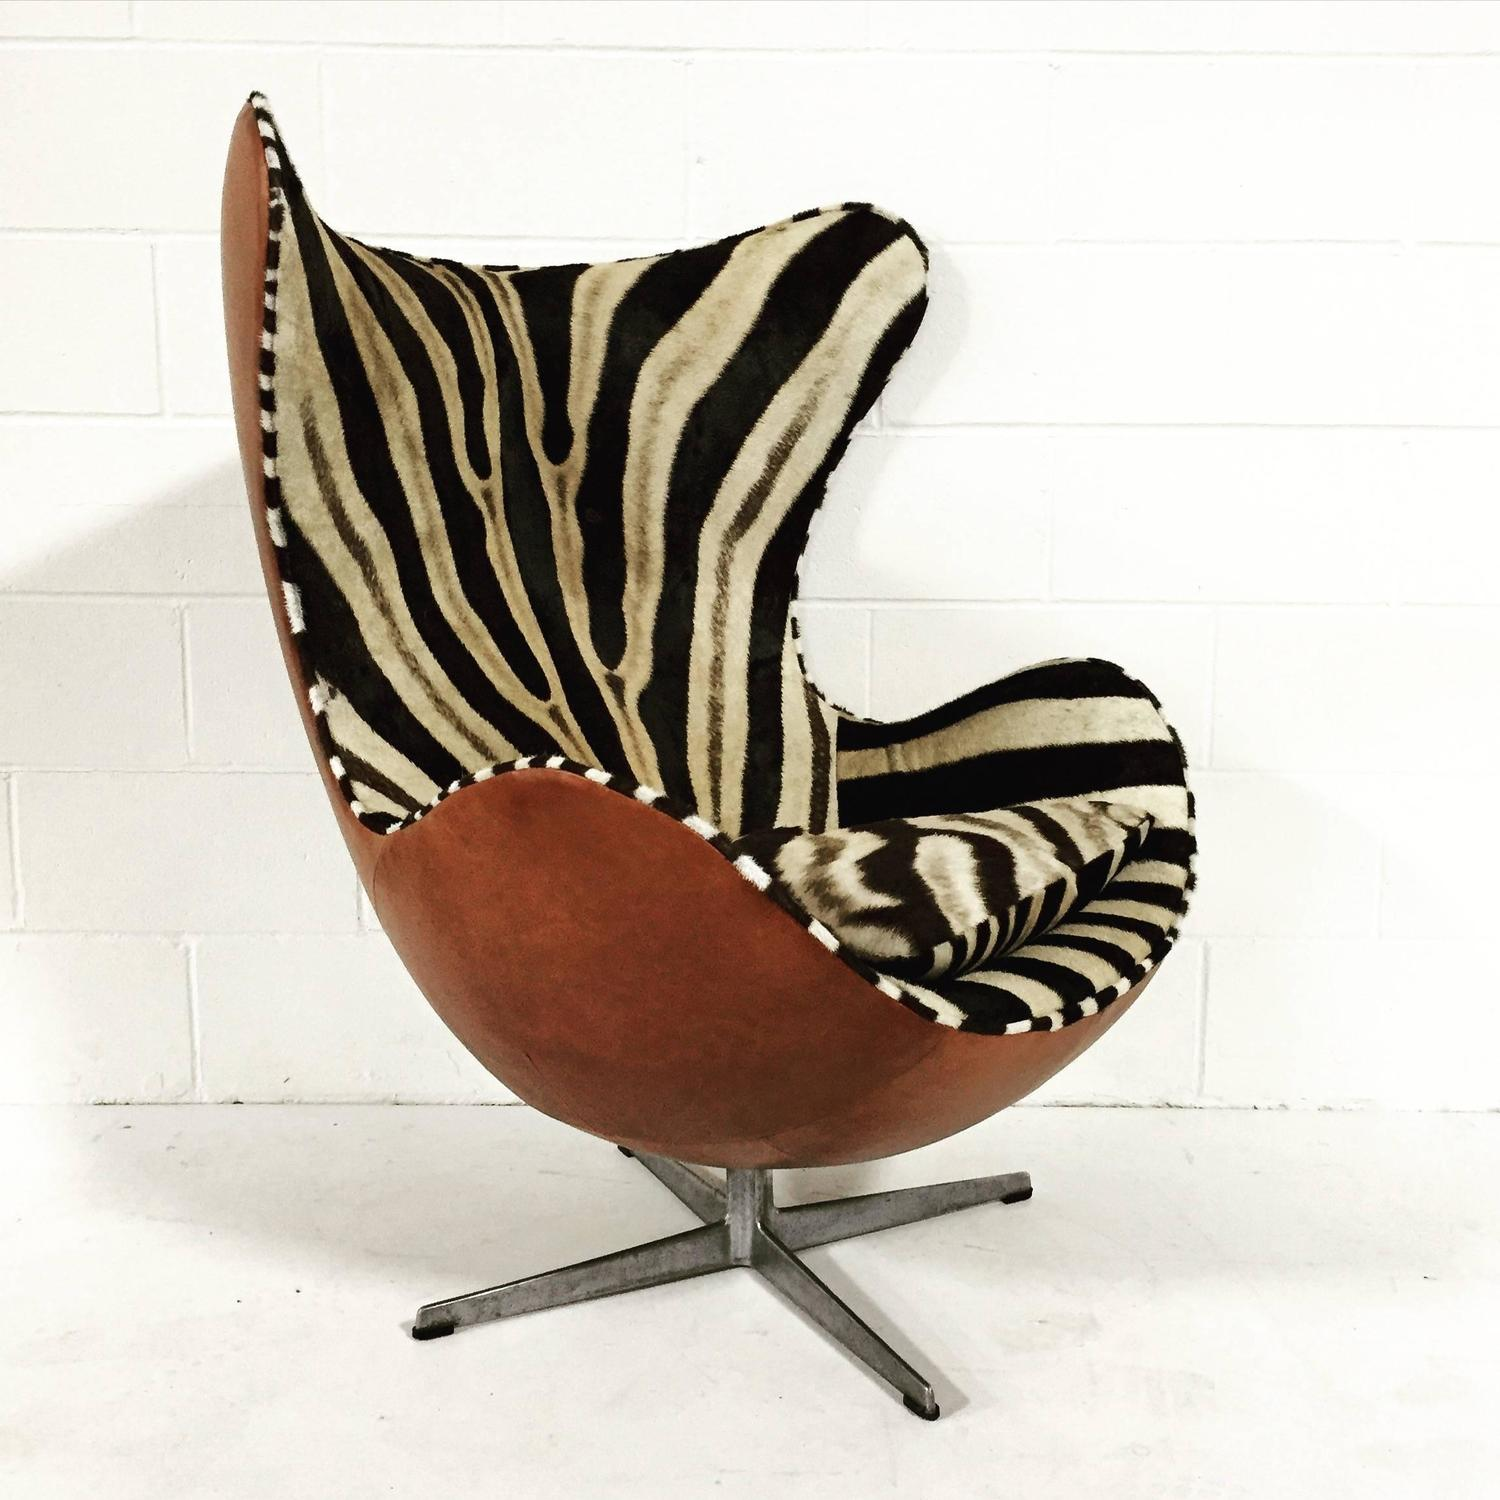 tattooing chairs for sale elasticated dining room chair covers zebra skin